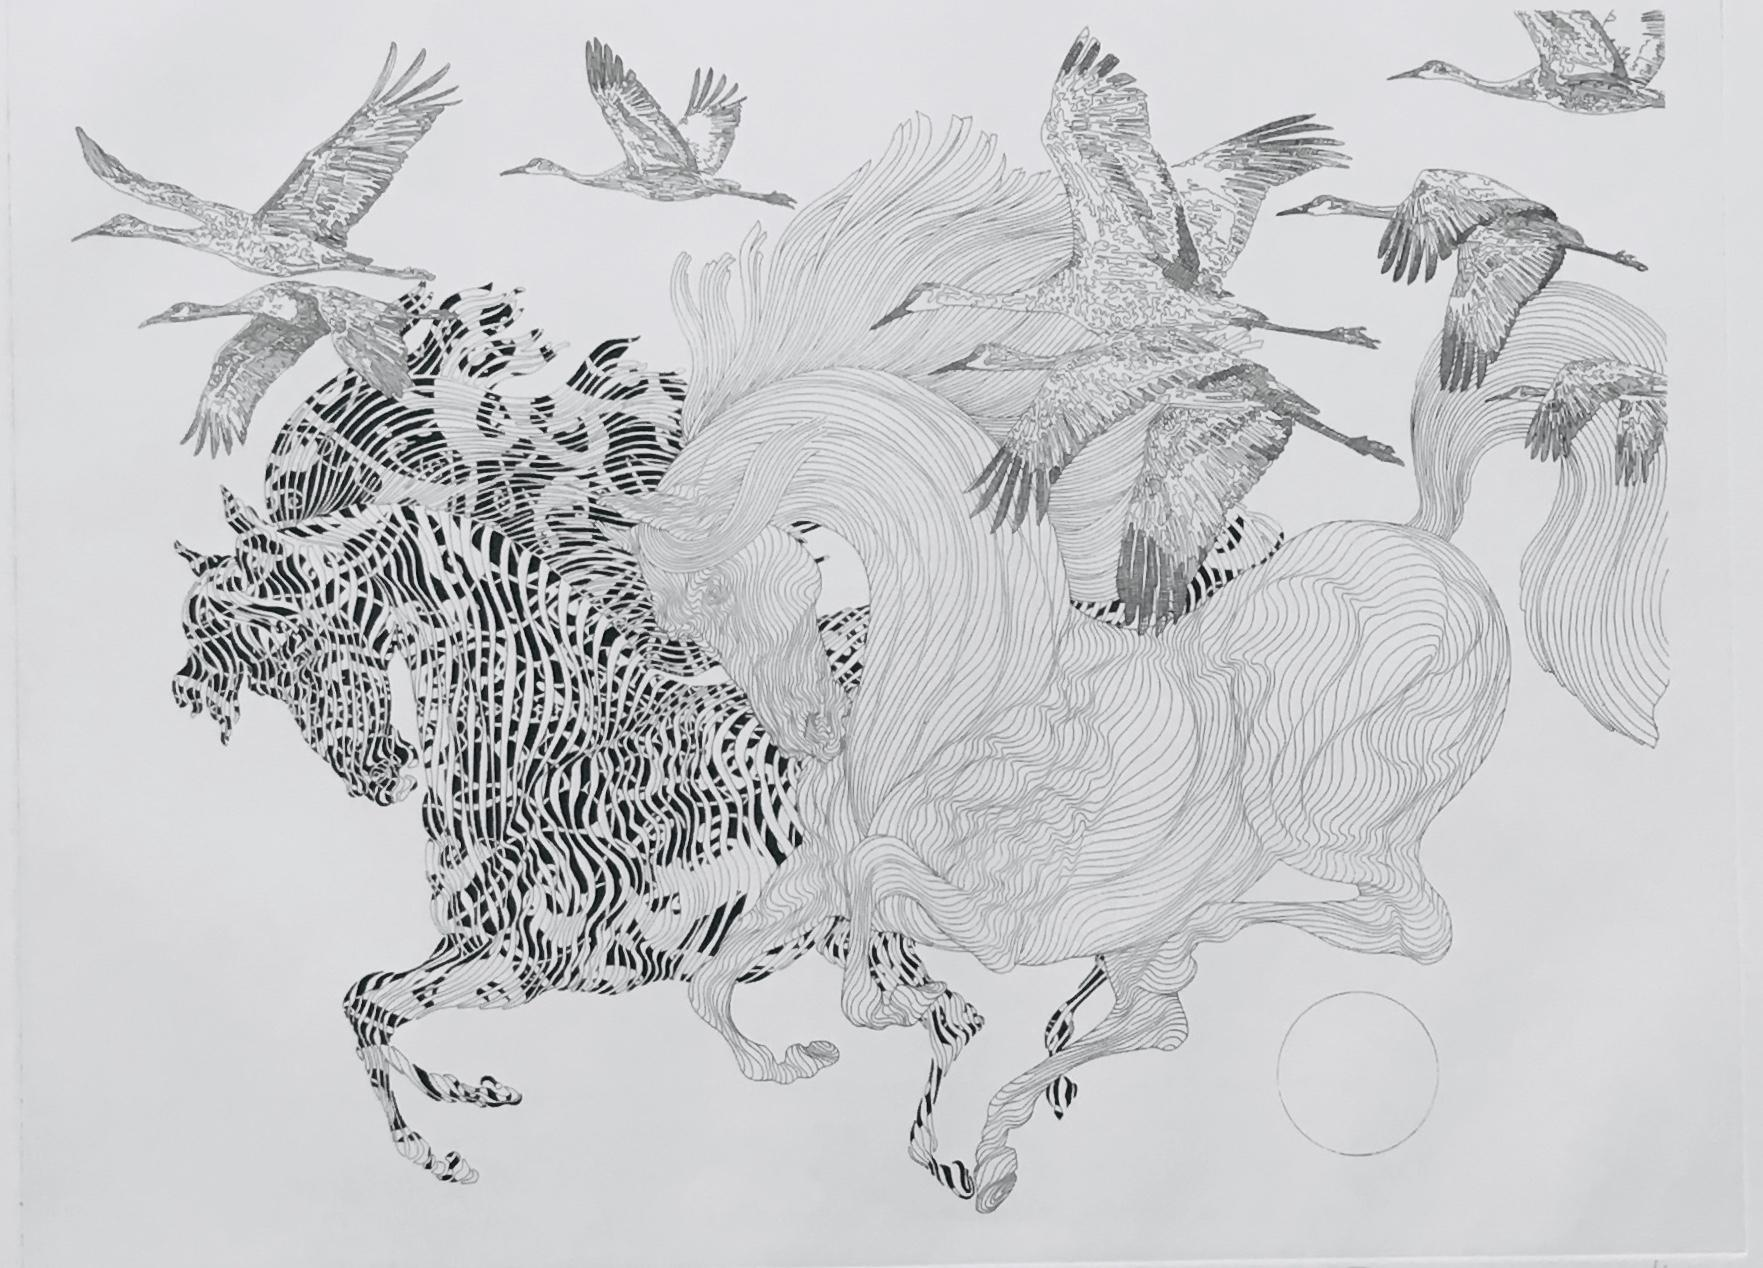 Guillaume Azoulay, Le Vol de Grues, 2016, Horses, Etching on Paper